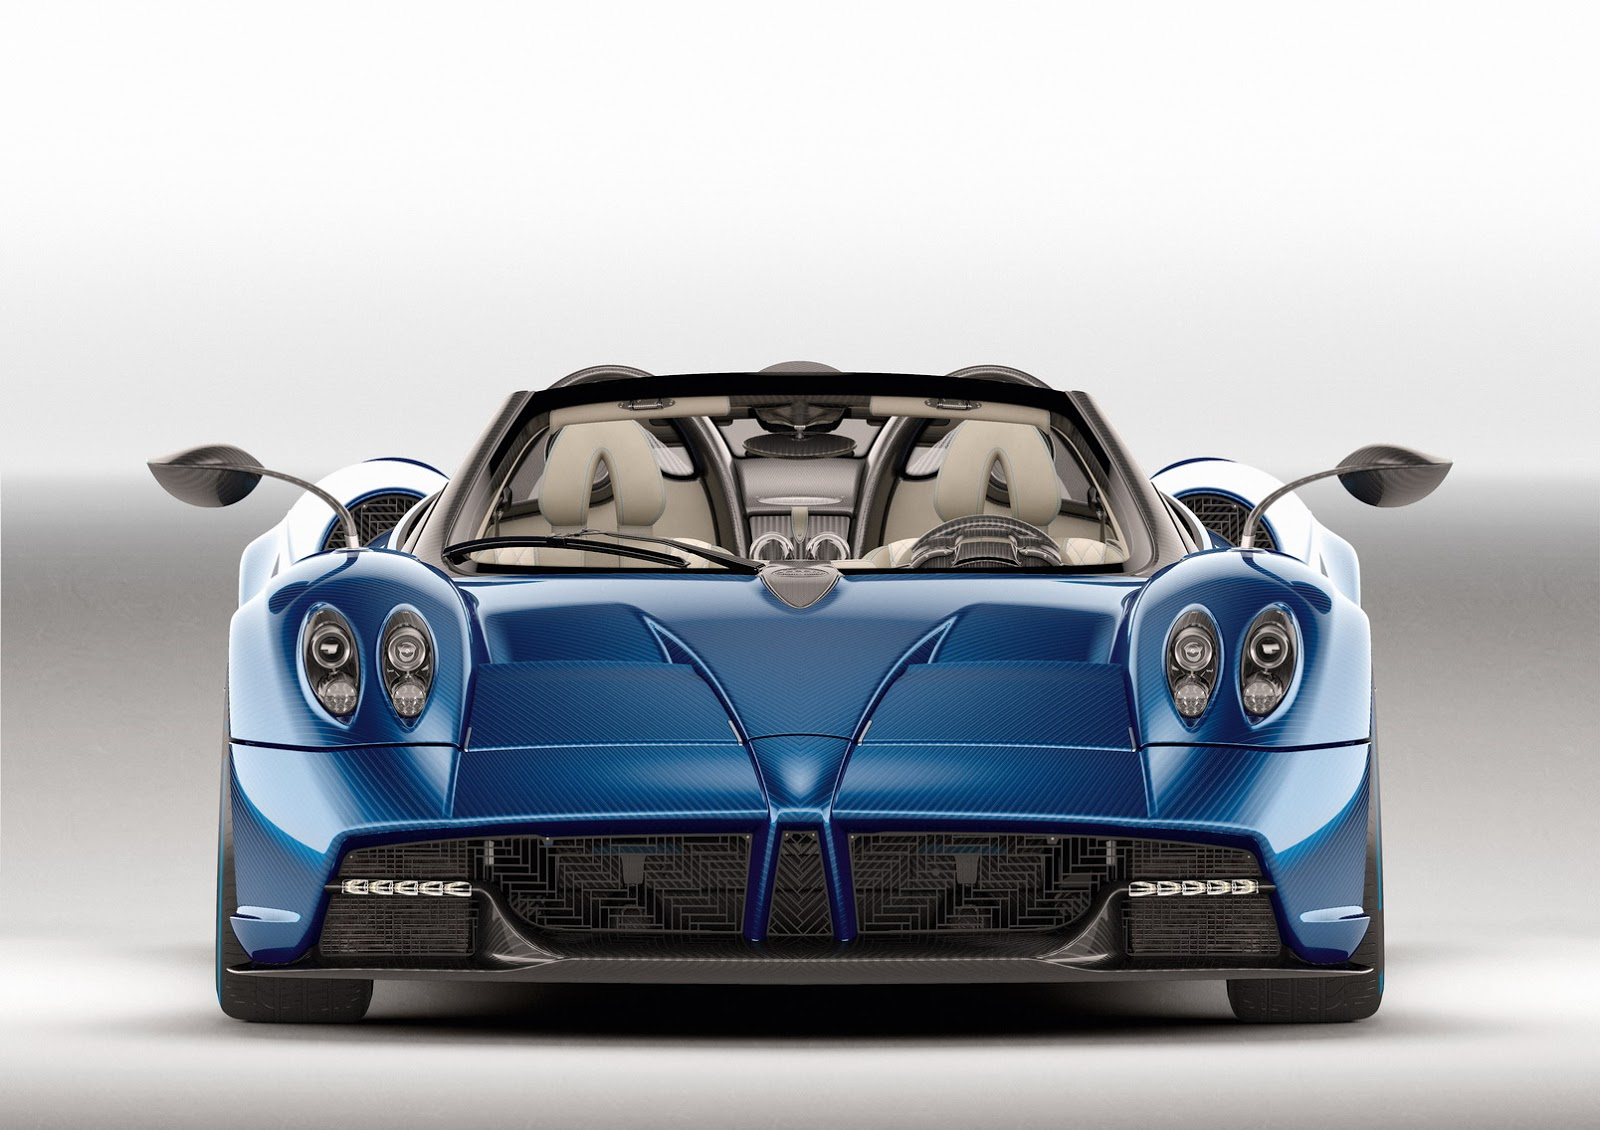 Watch besides This Is New Pagani Huayra Roadster In together with 1089068 volvo Outlines Safety Aspects Of Modular Spa Platform together with Mclaren 570s Review besides Mclaren 675lt Spider 2015. on mclaren spider 2015